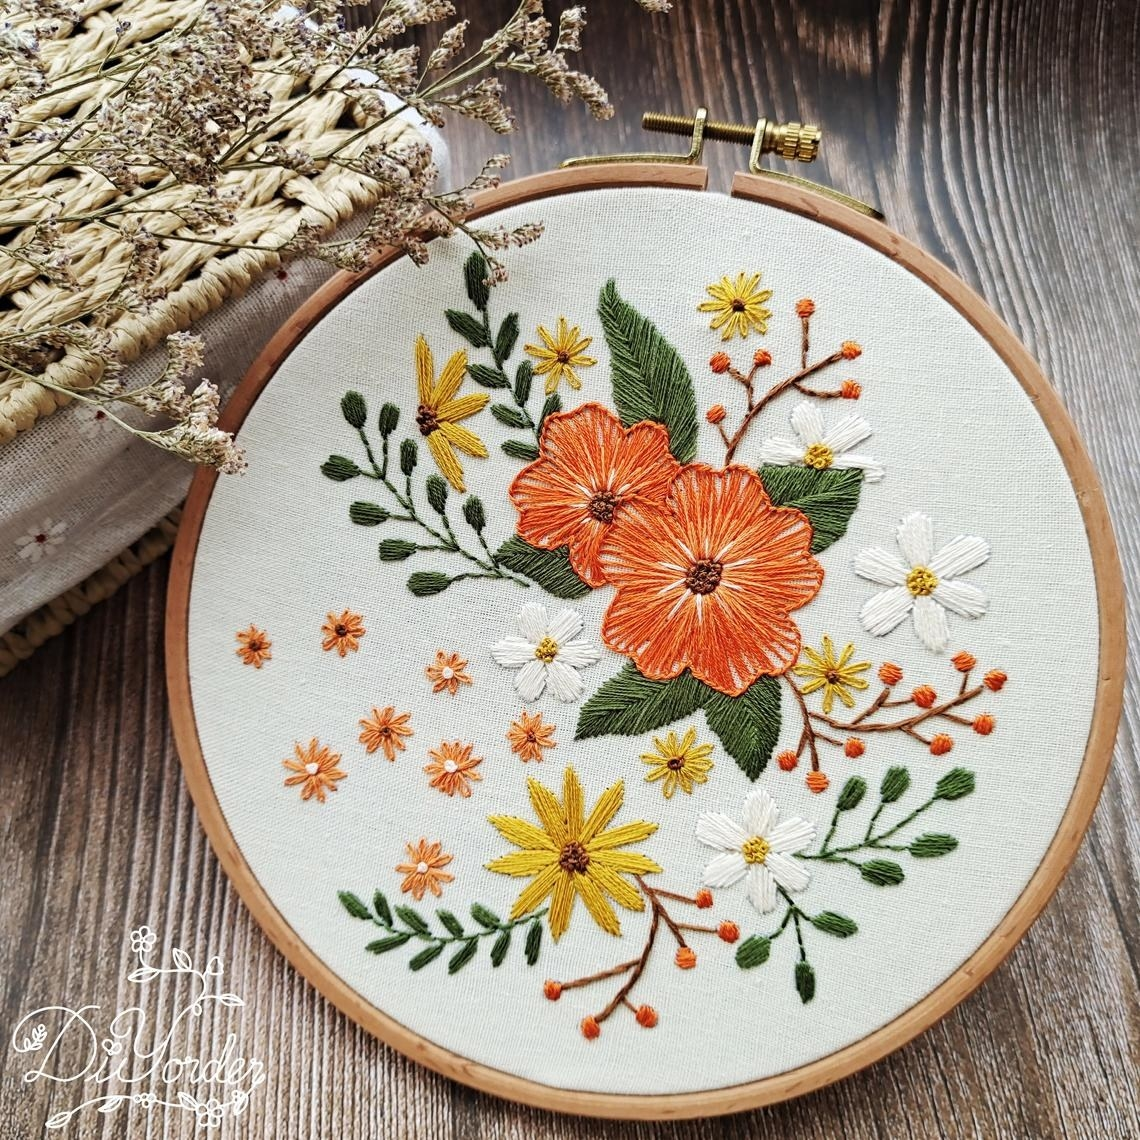 An embroidery hoop with a floral design on the cloth